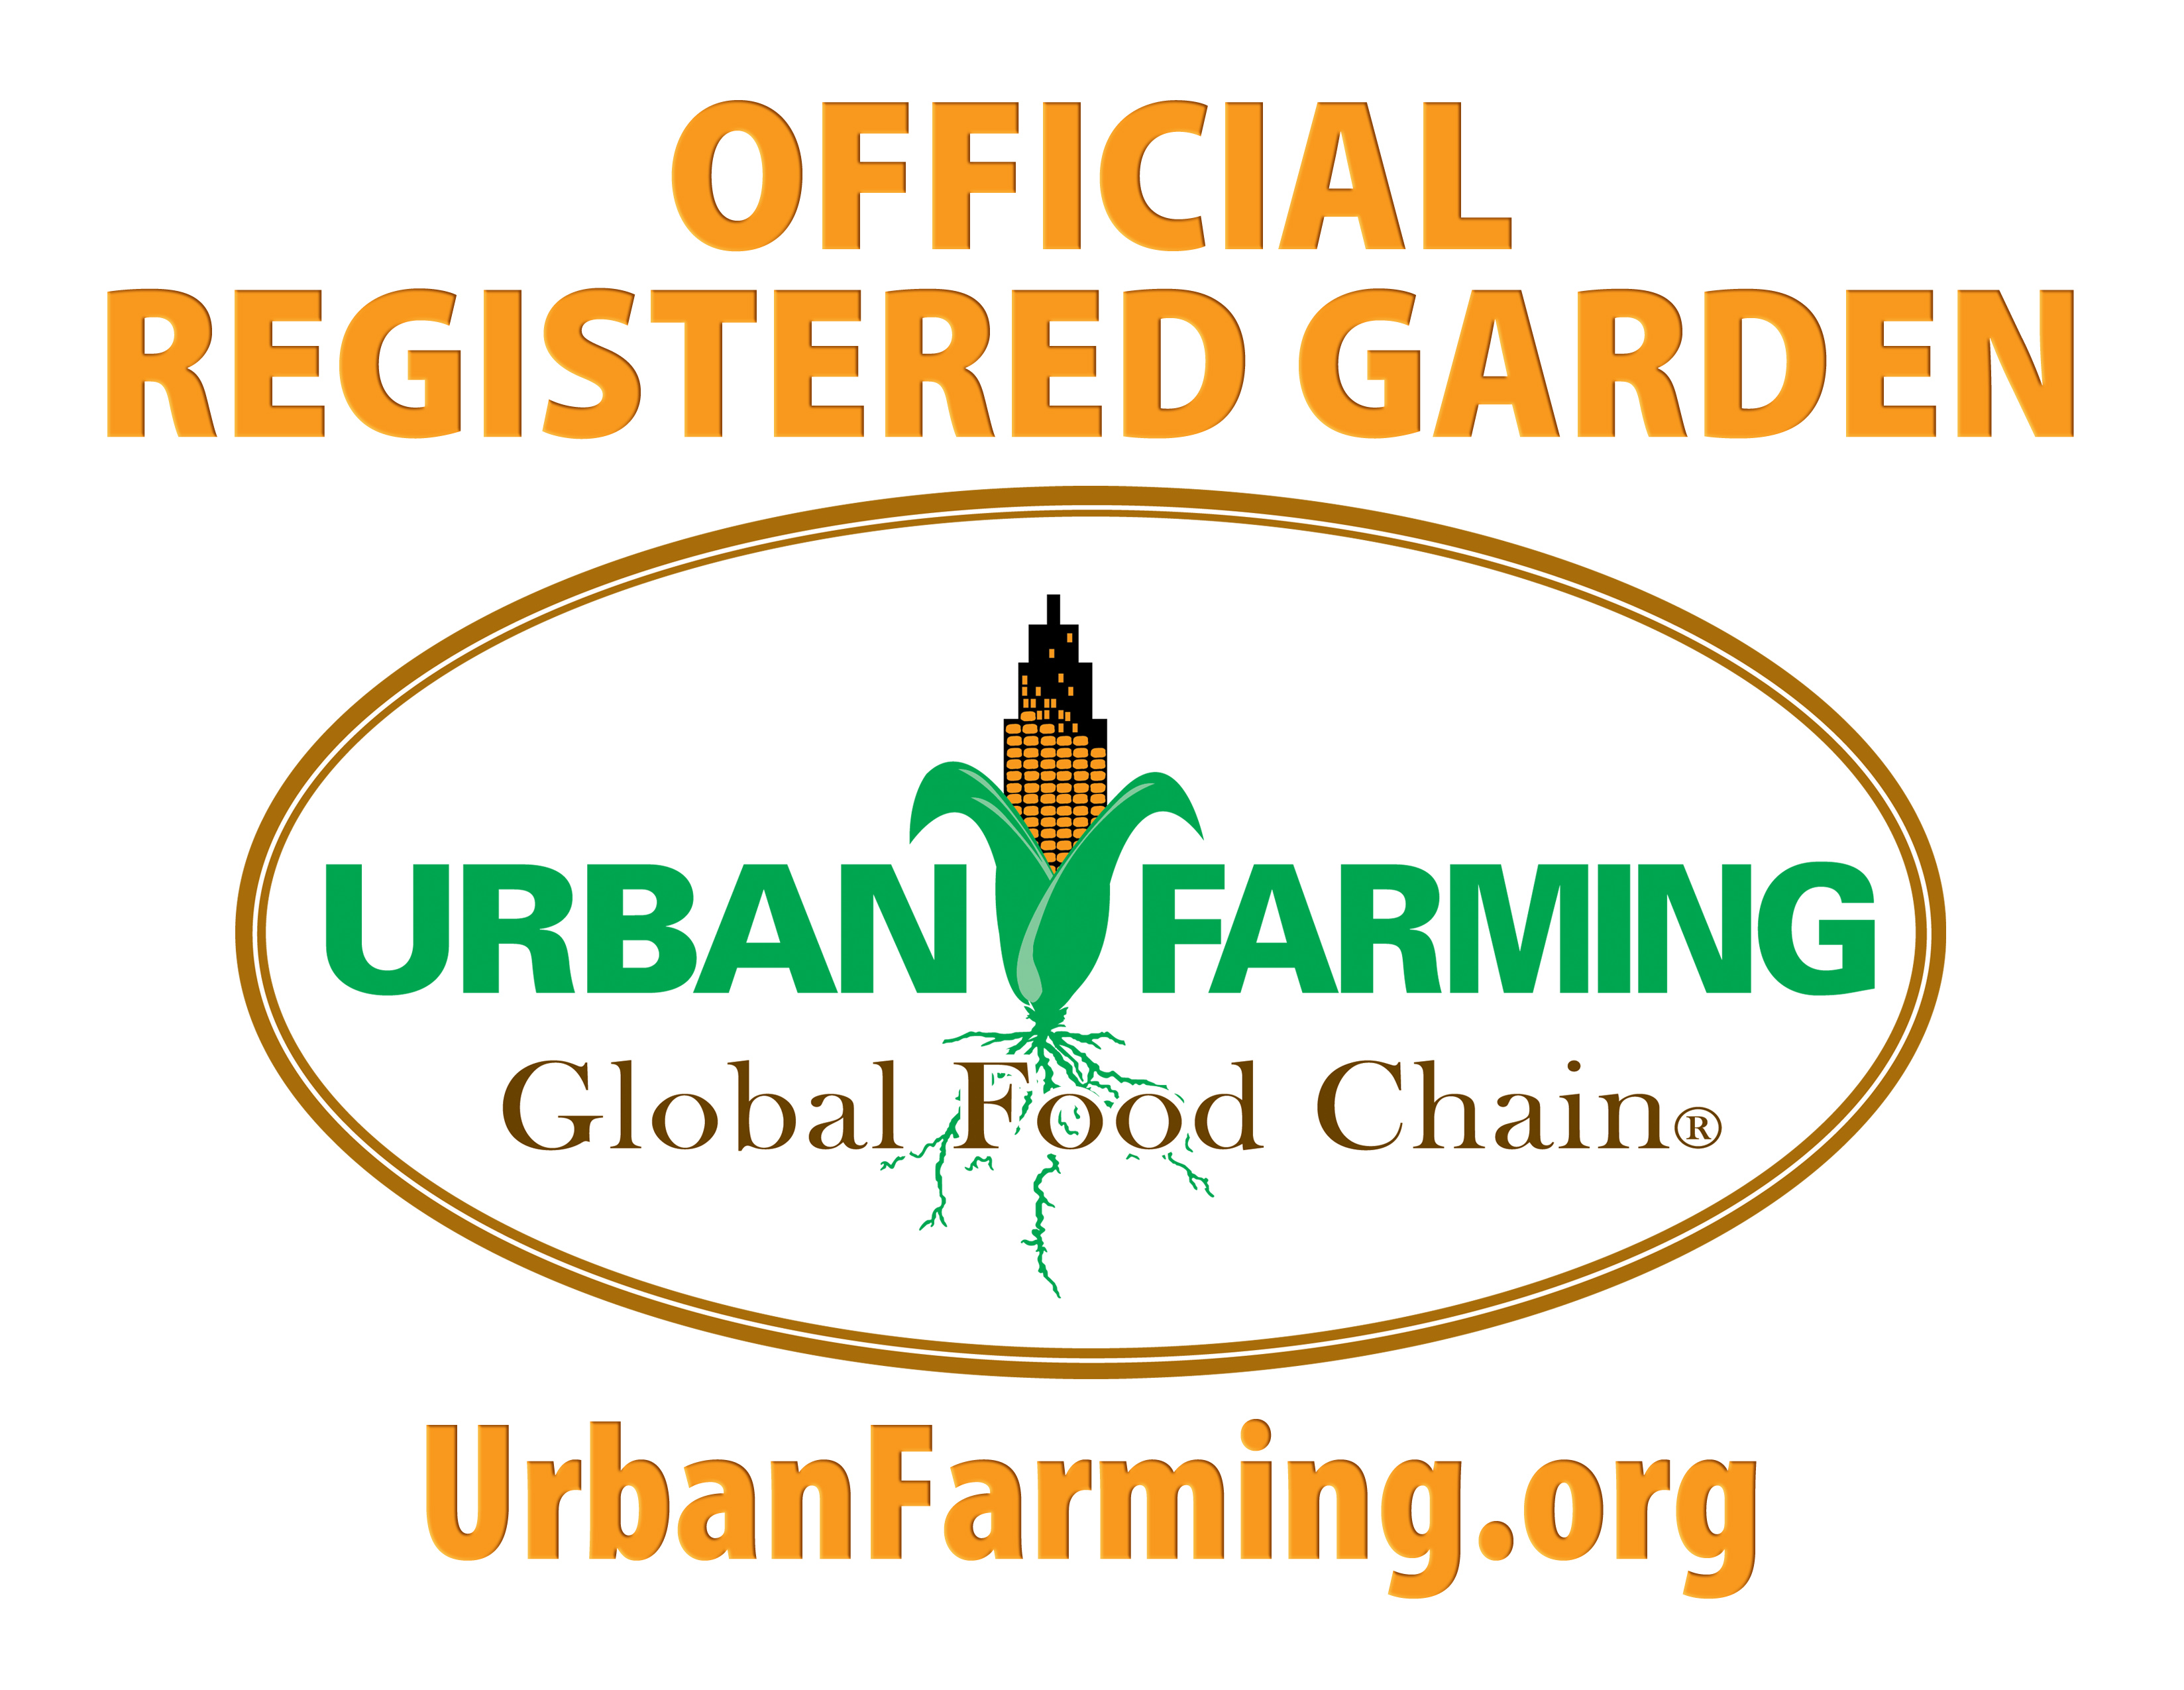 We are now on the global registry for urban farms.